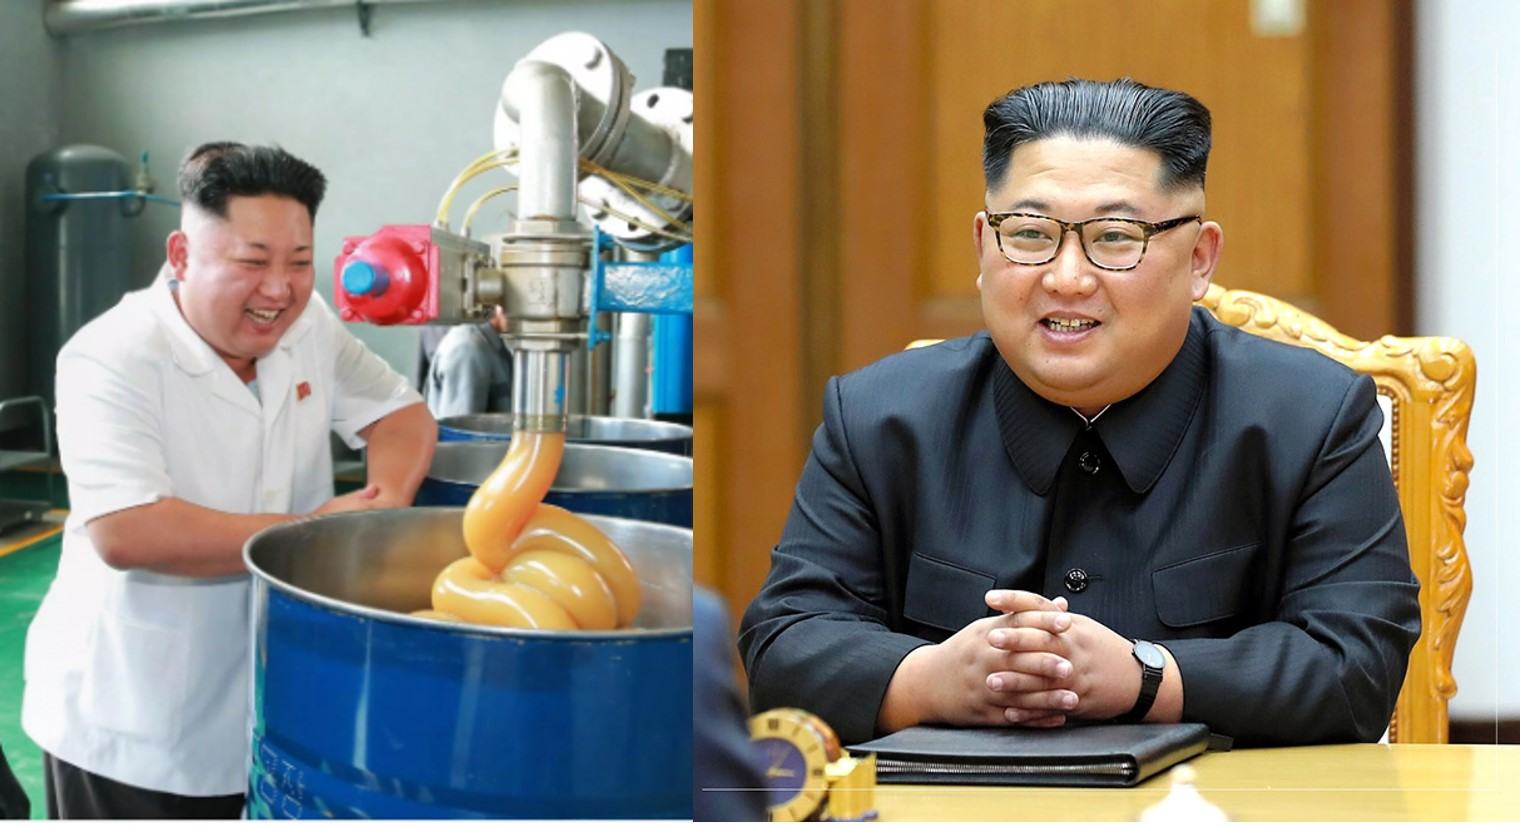 President of North Korea, Kim Jong-un orders citizens to submit their poo